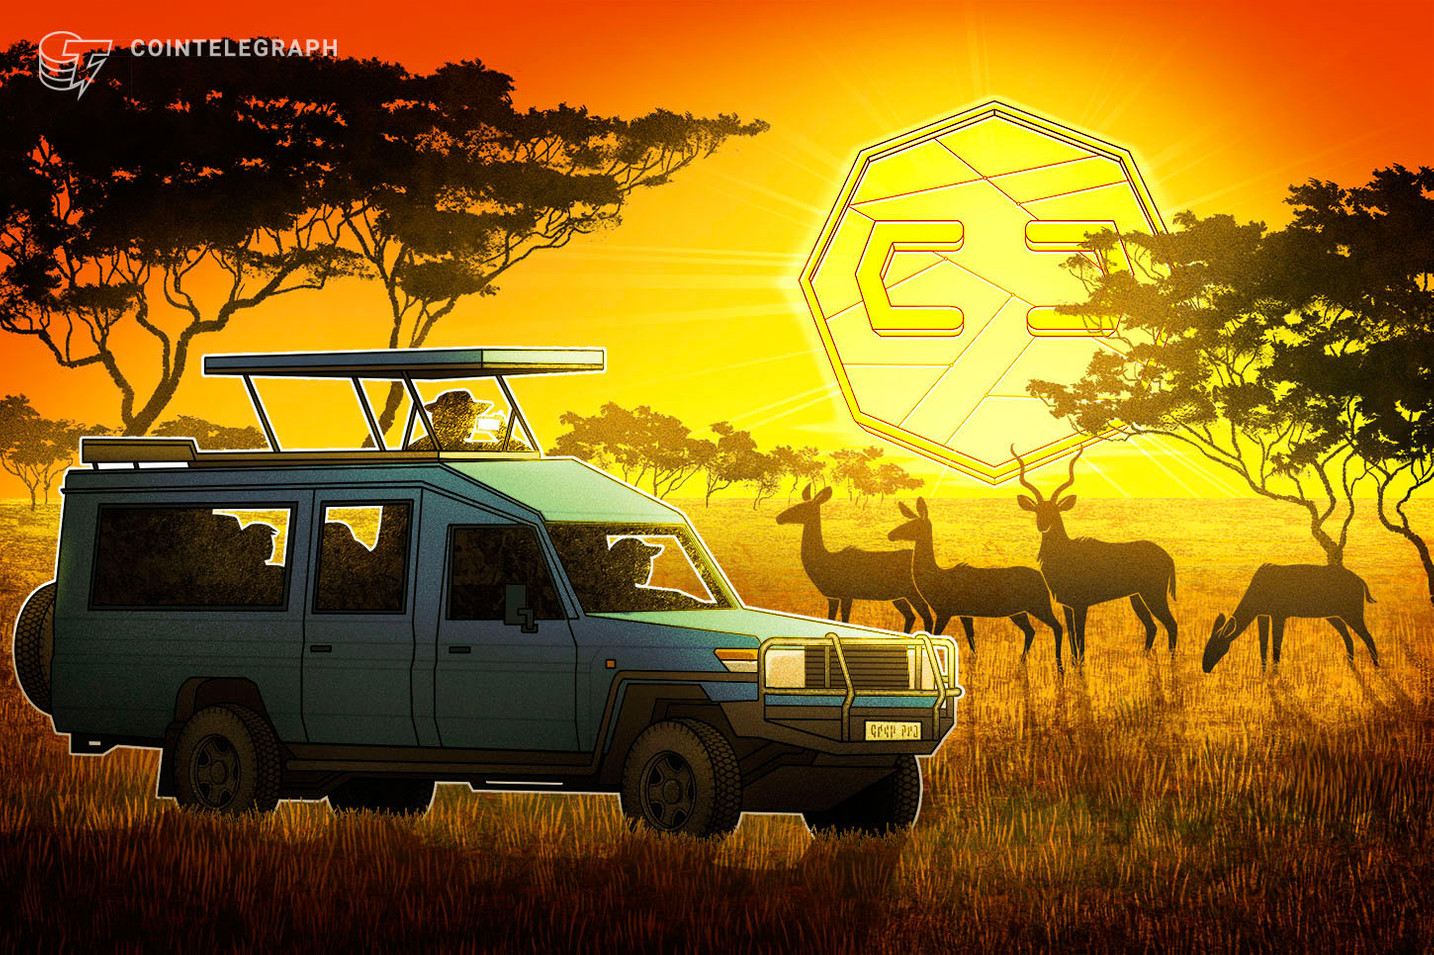 Nigeria regulators recognize digital assets in stunning new statement